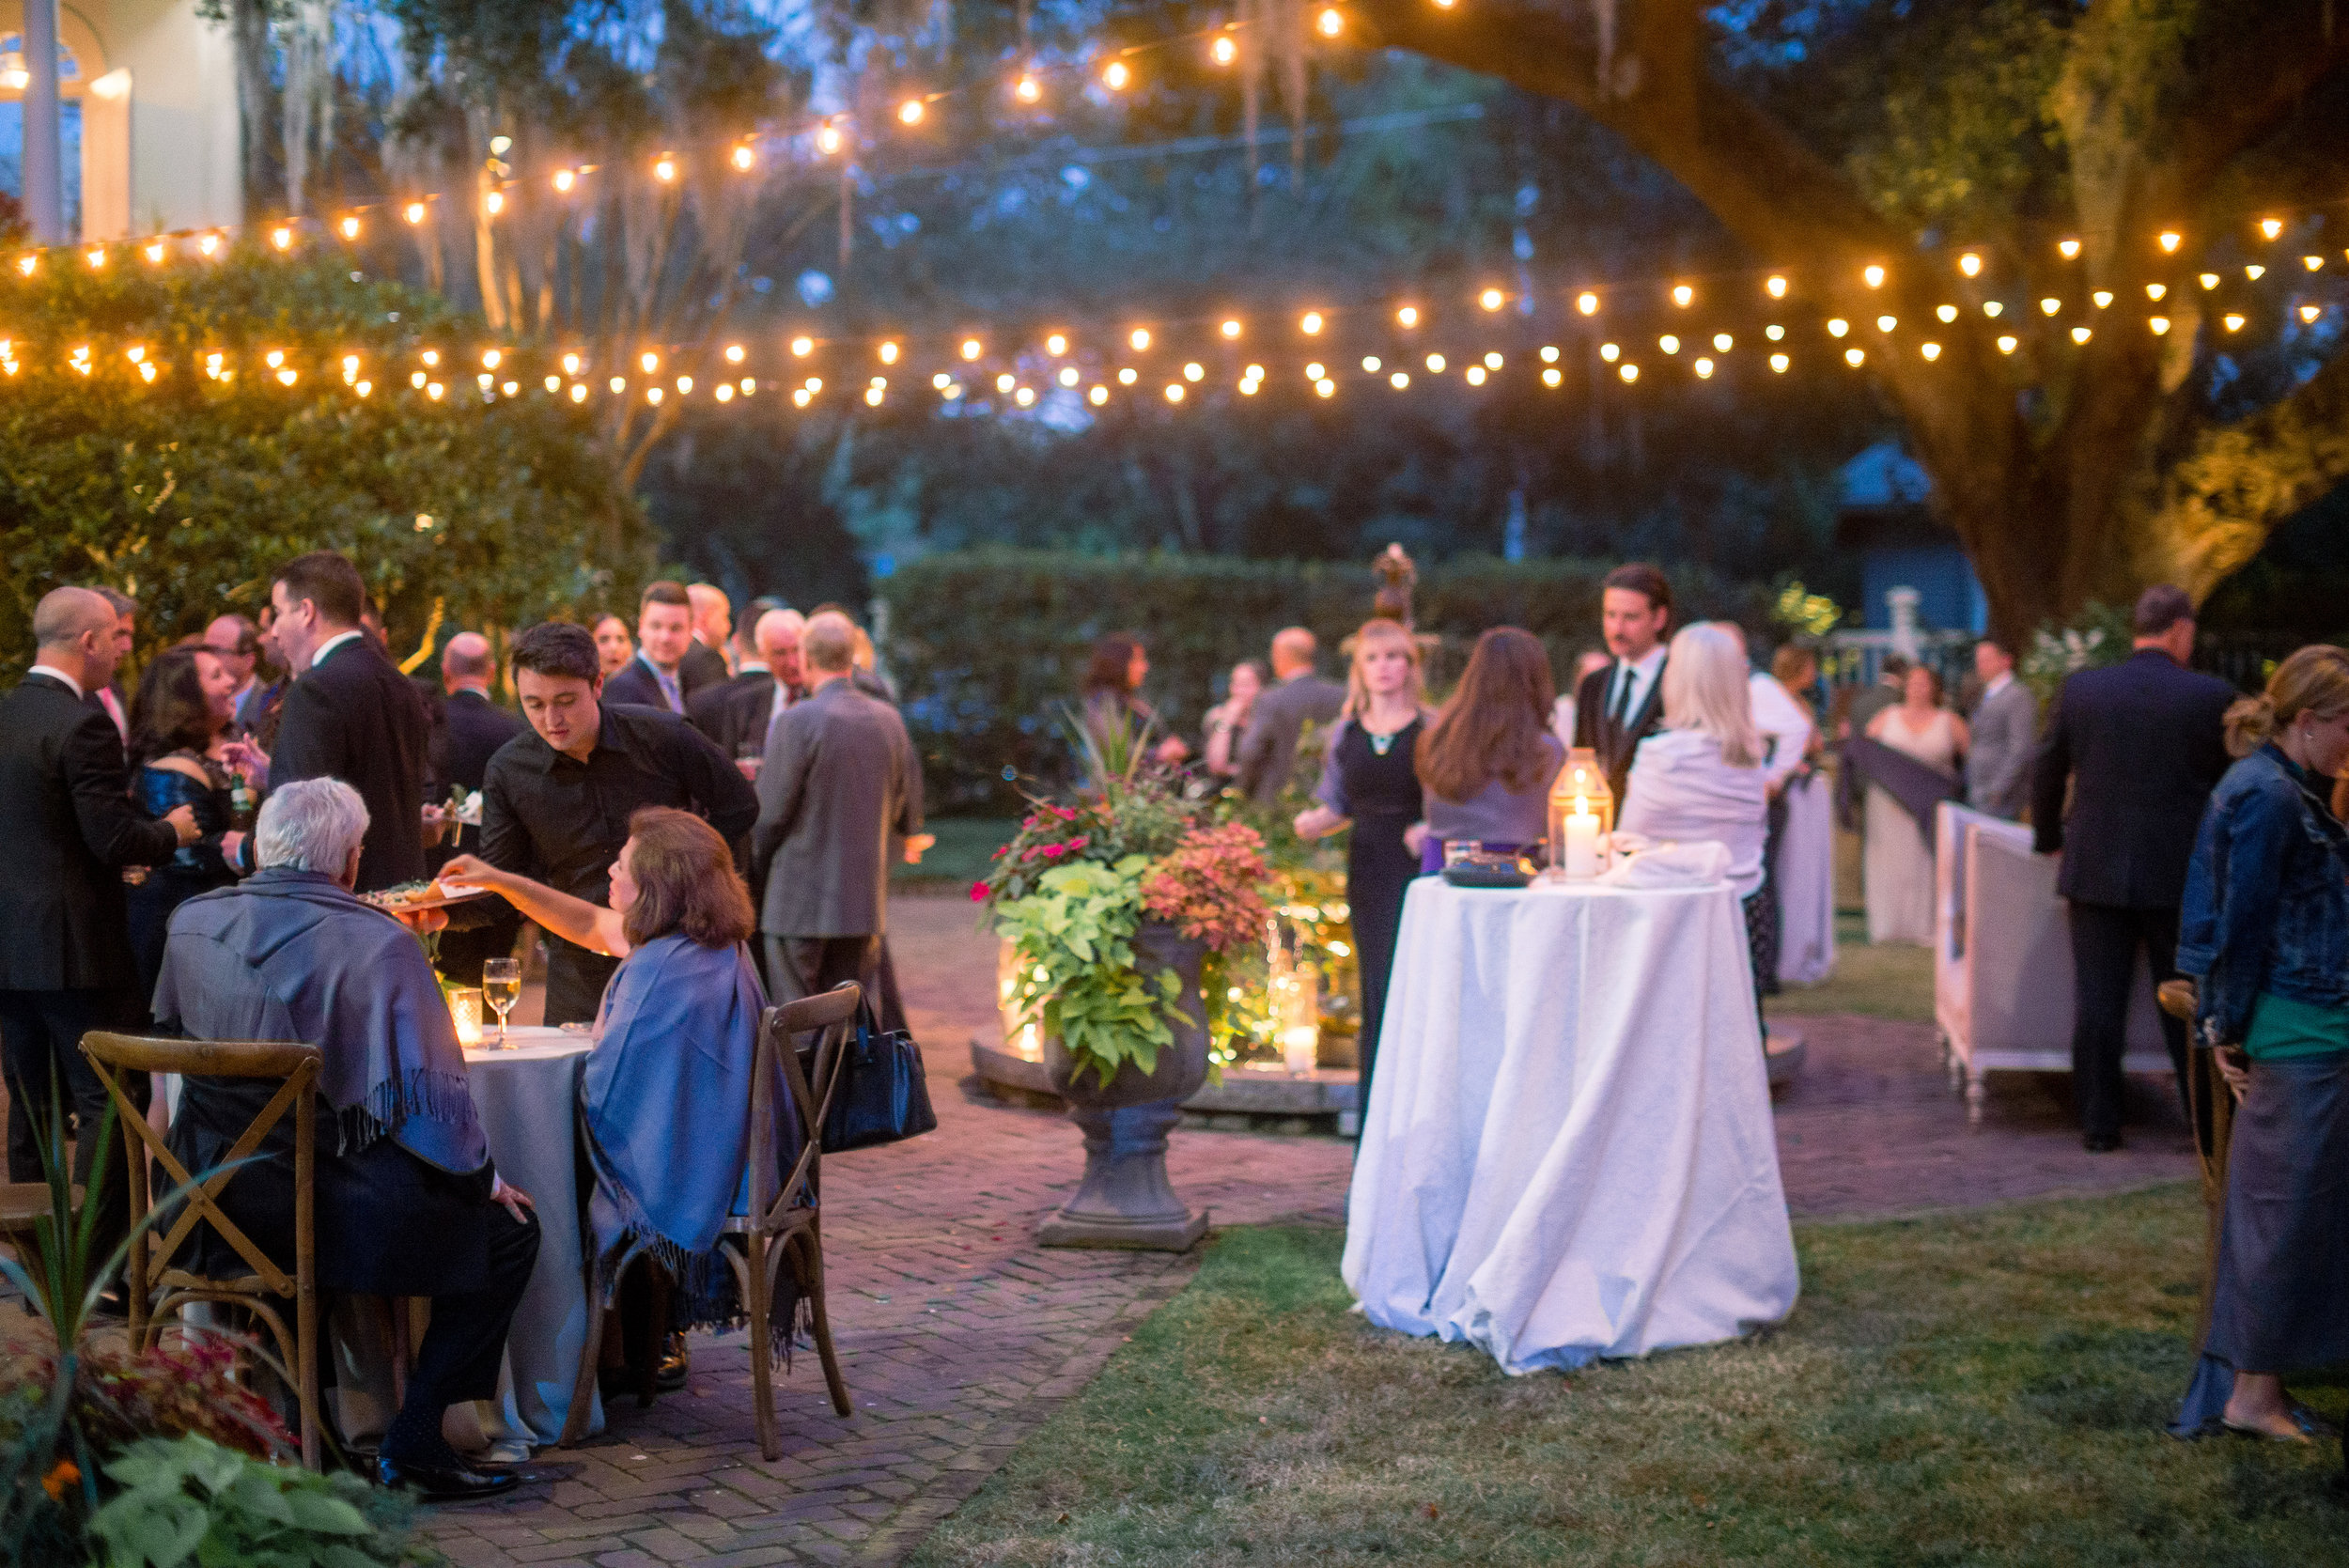 Outdoor reception at a Thomas Bennett House wedding   //  Event Planning & Design by A Charleston Bride  //  A Lowcountry Wedding Magazine & Blog